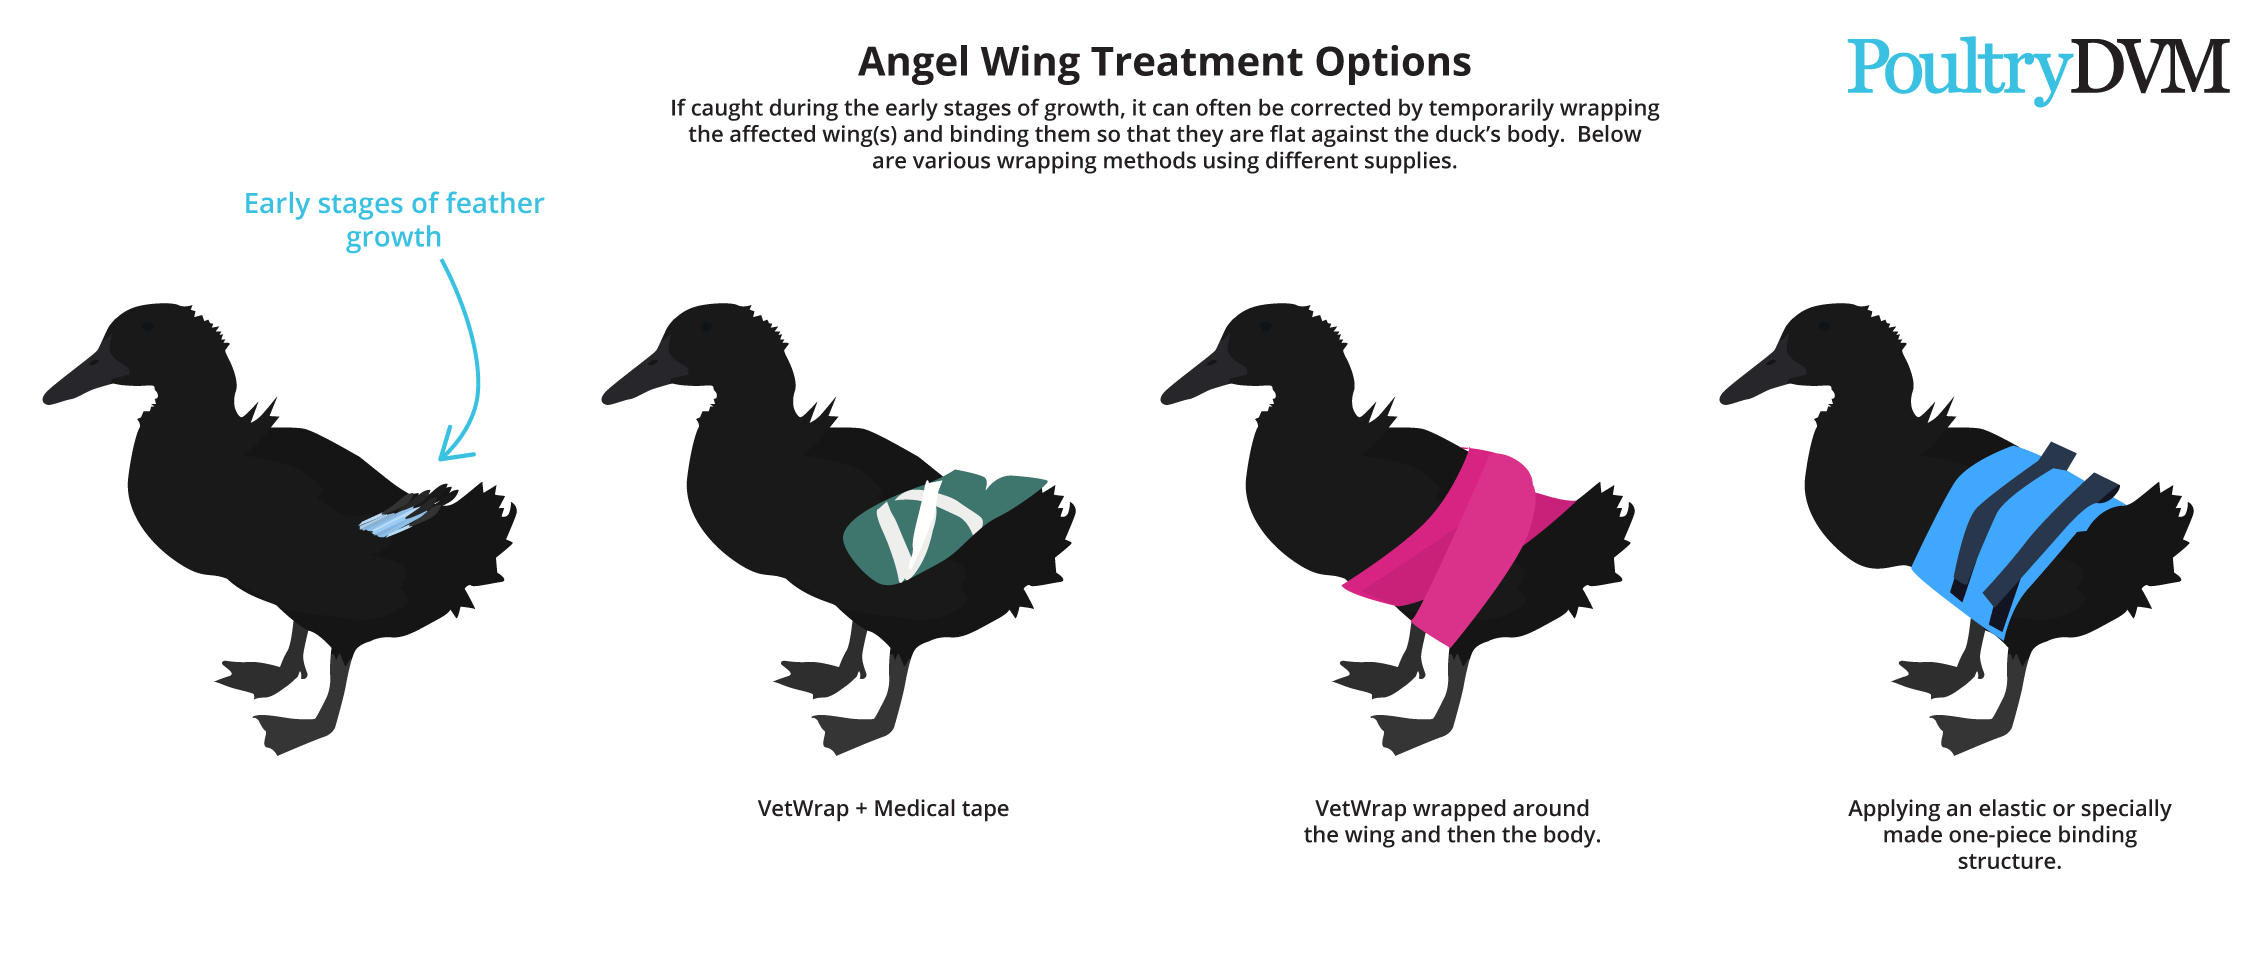 How To Fix Angel Wing In Ducks Backyard Ducks Angel Wings Duck